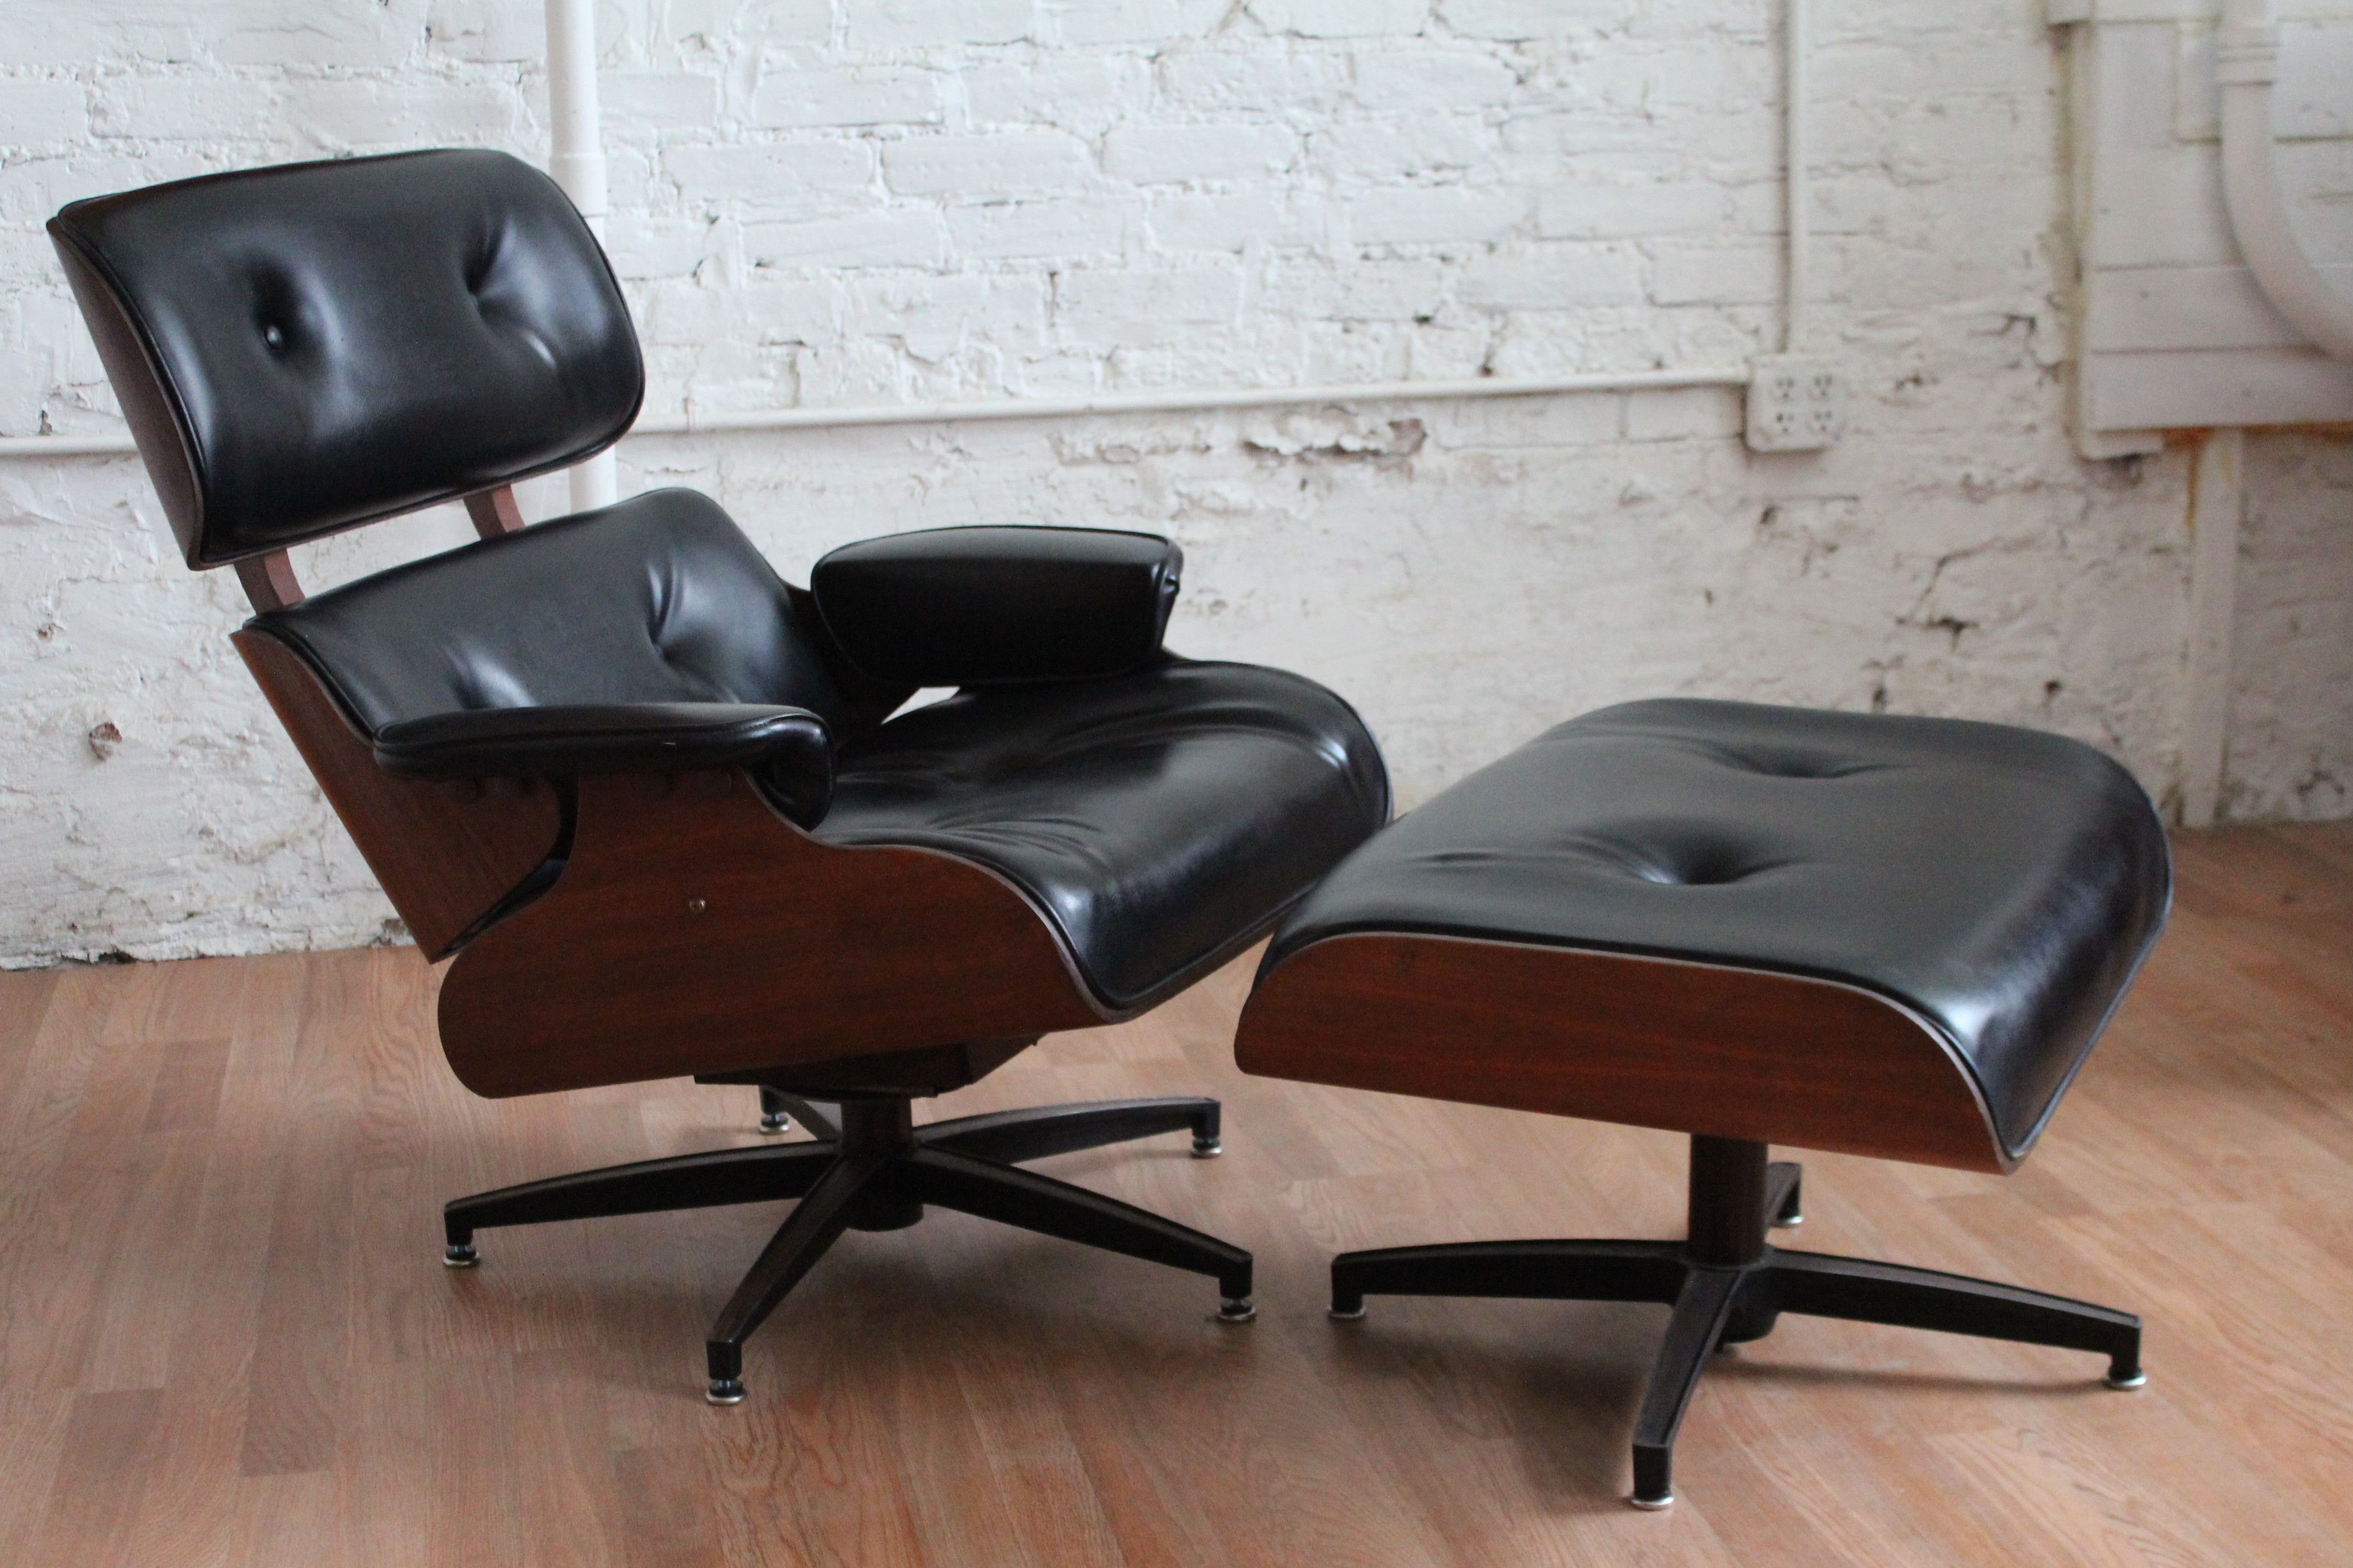 Surprising Mid Century Modern Charlton Lounge Chair And Ottoman An Short Links Chair Design For Home Short Linksinfo